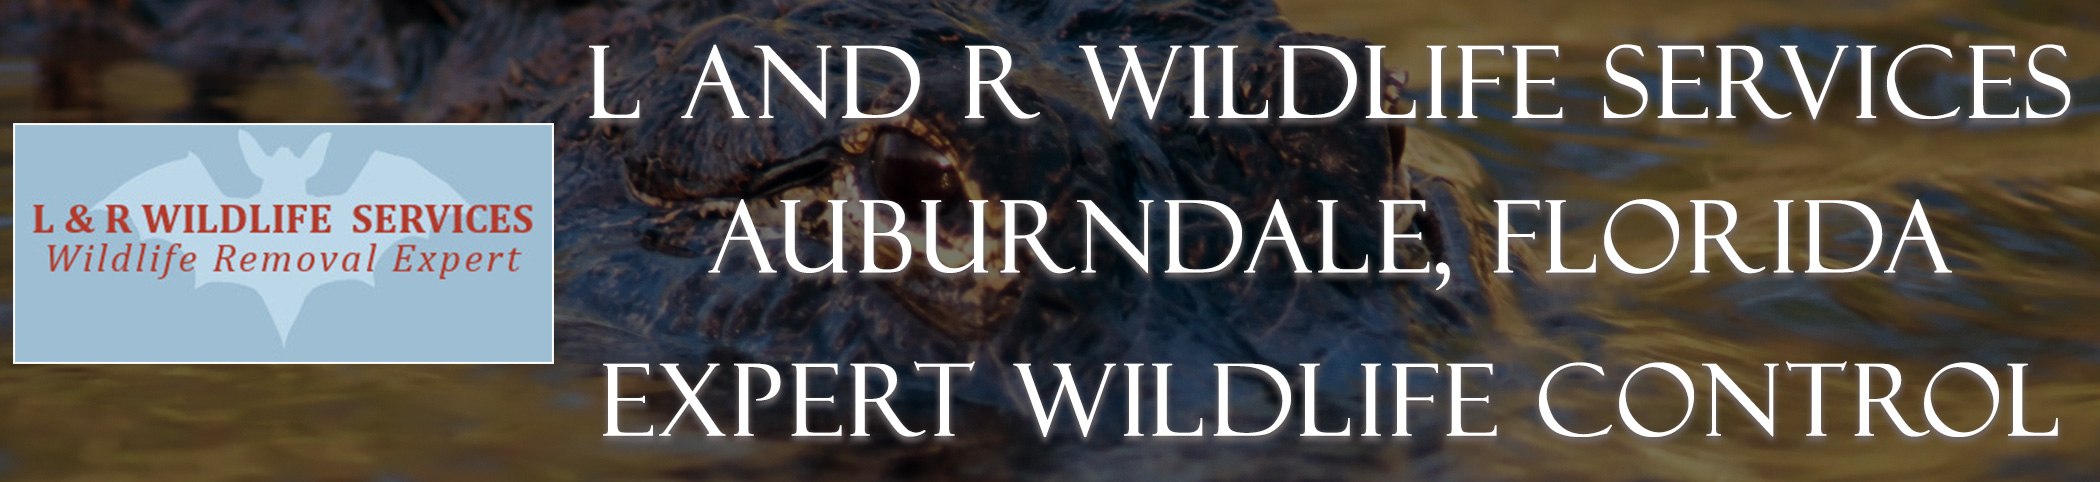 L_and_R_Wildlife_Services_Auburndale_FL_headers